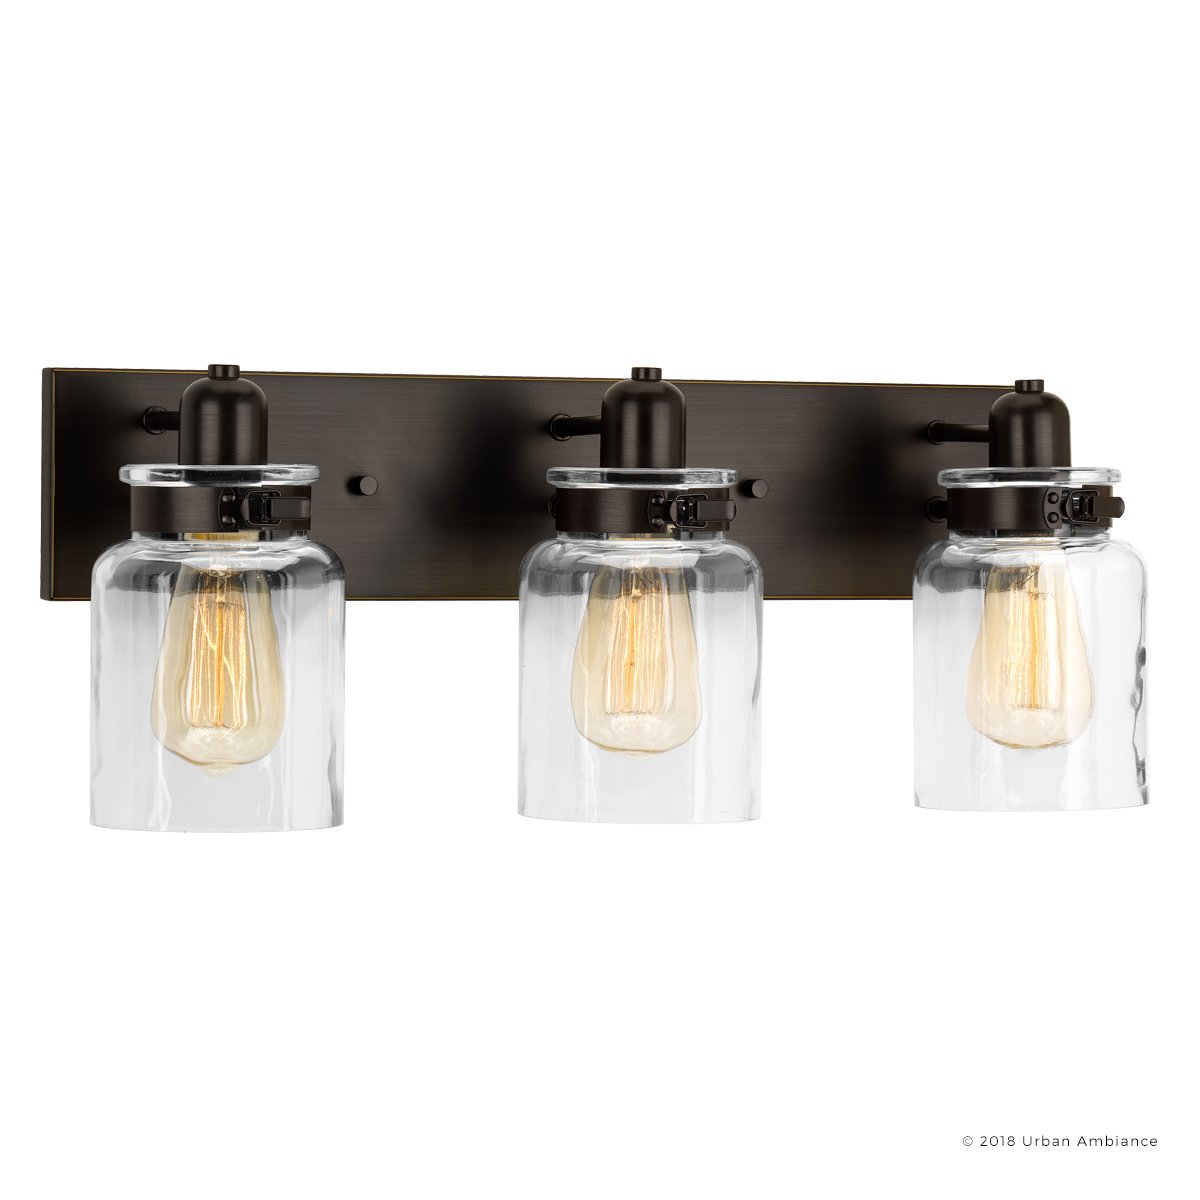 Luxury Modern Farmhouse Bathroom Vanity Light, Medium Size: 8.625''H x 21.625''W, with Industrial Style Elements, Olde Bronze Finish, UHP2143 from the Bridgeport Collection by Urban Ambiance